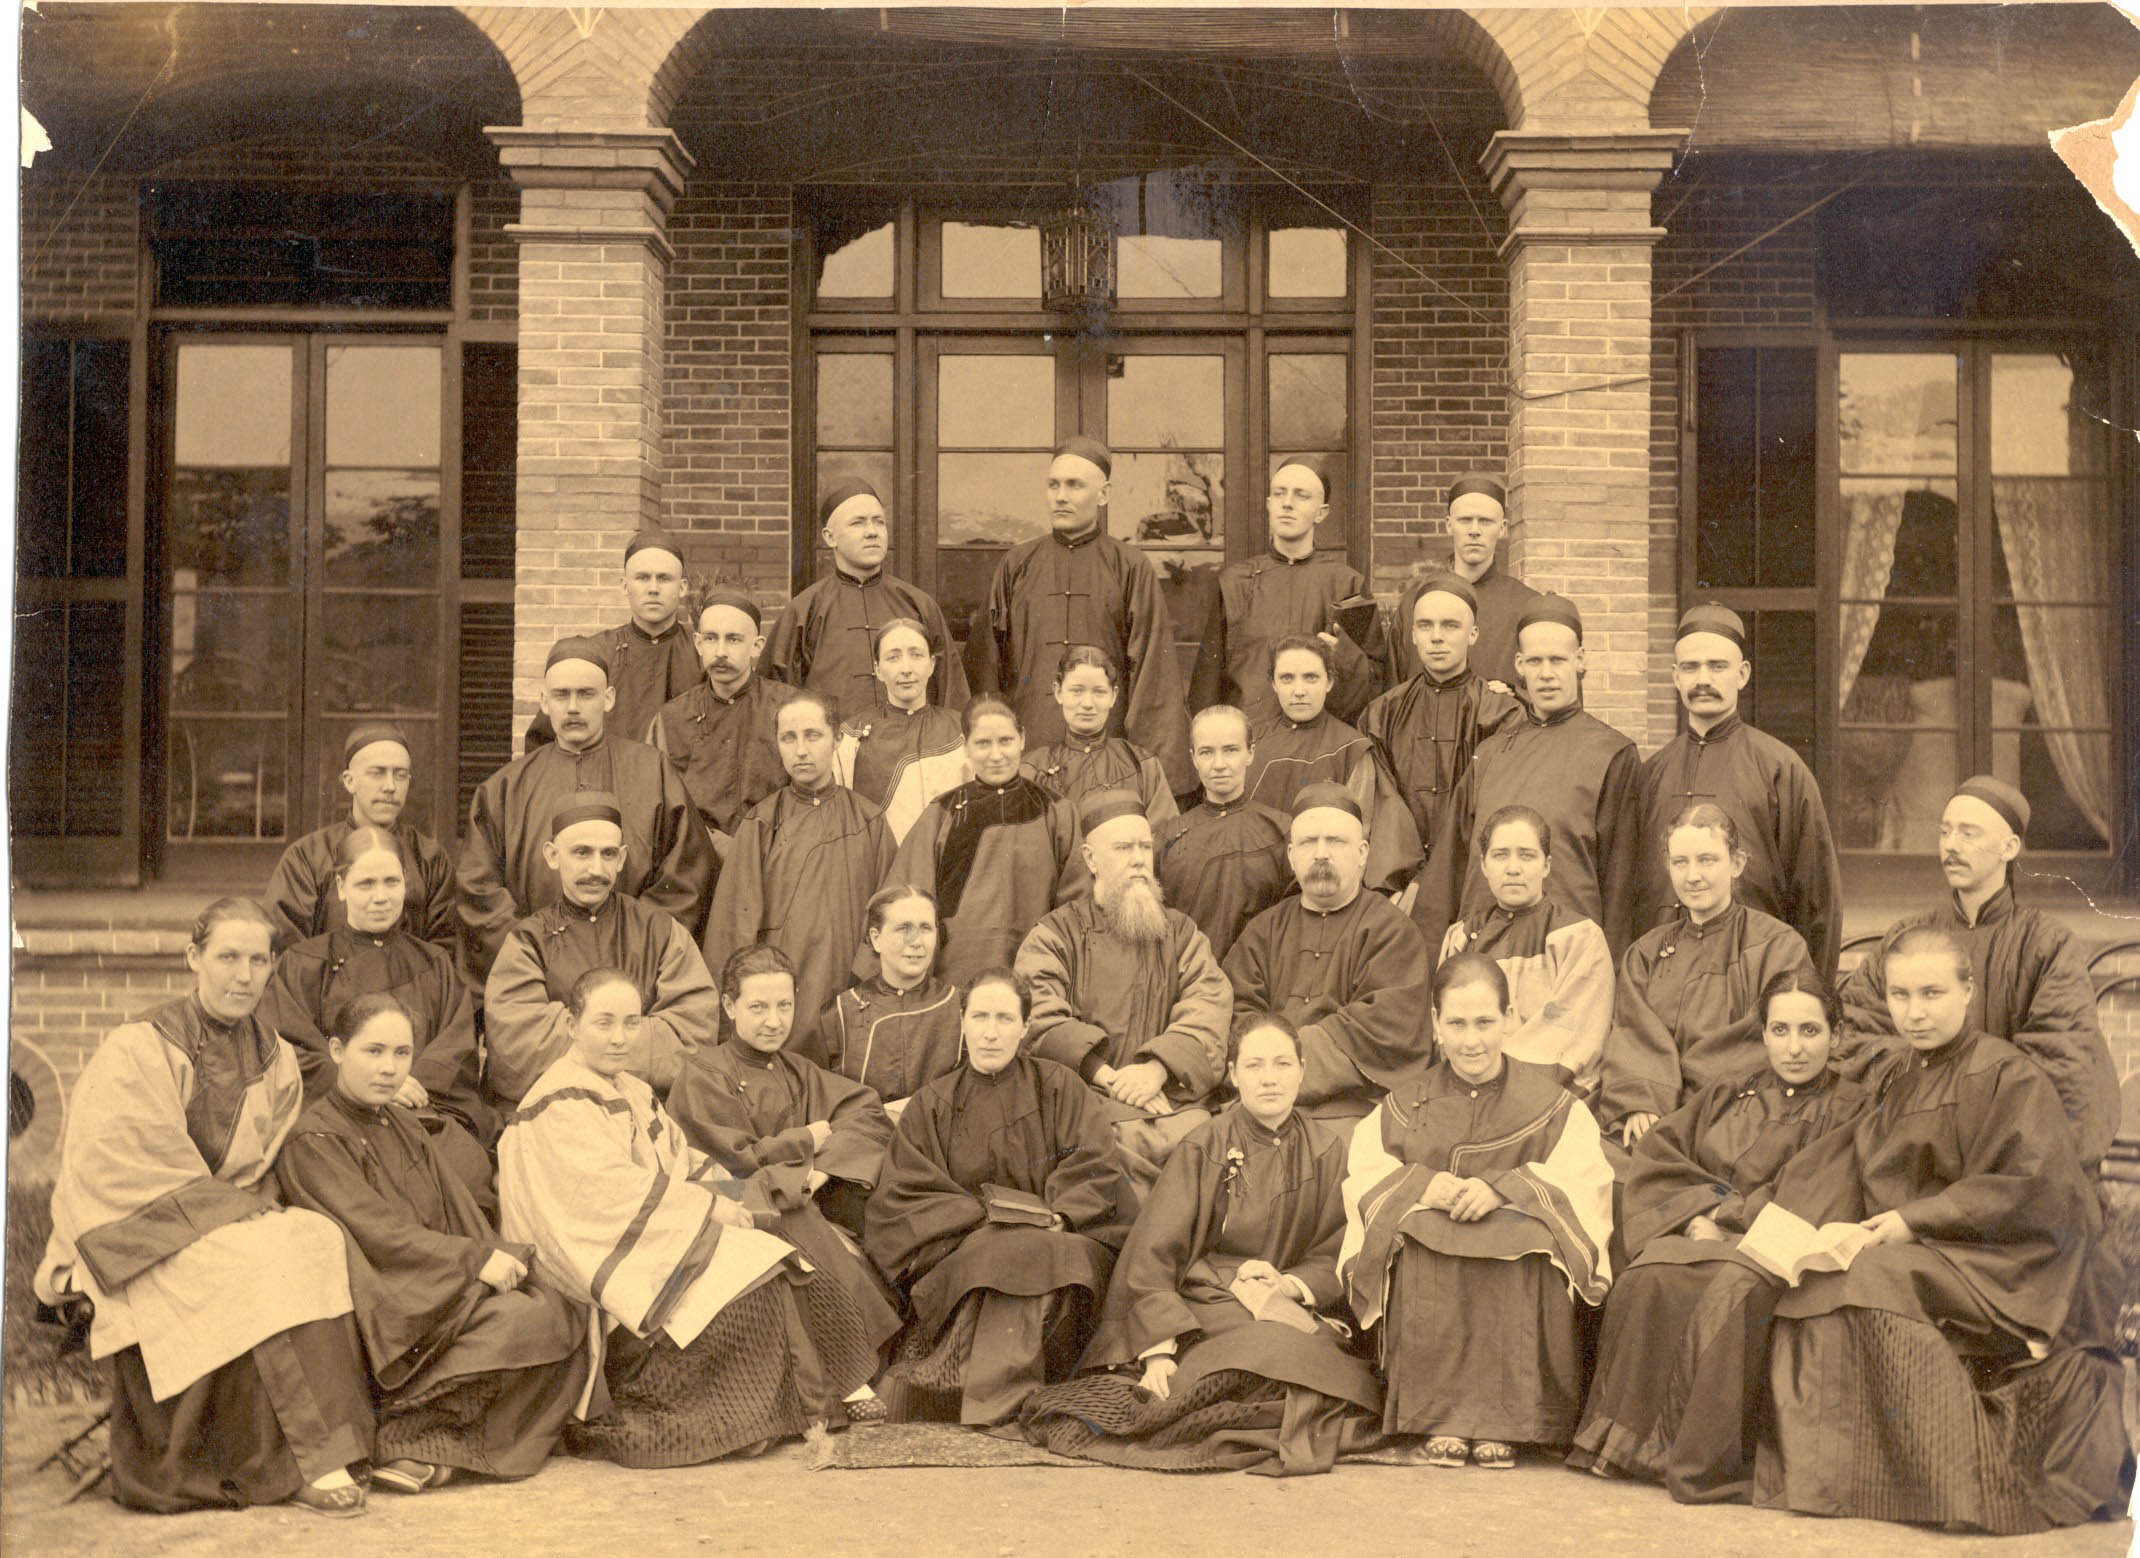 China Inland Mission missionaries in Chinese dress (1891). Hudson Taylor is seated in the middle of the second row with full gray beard.